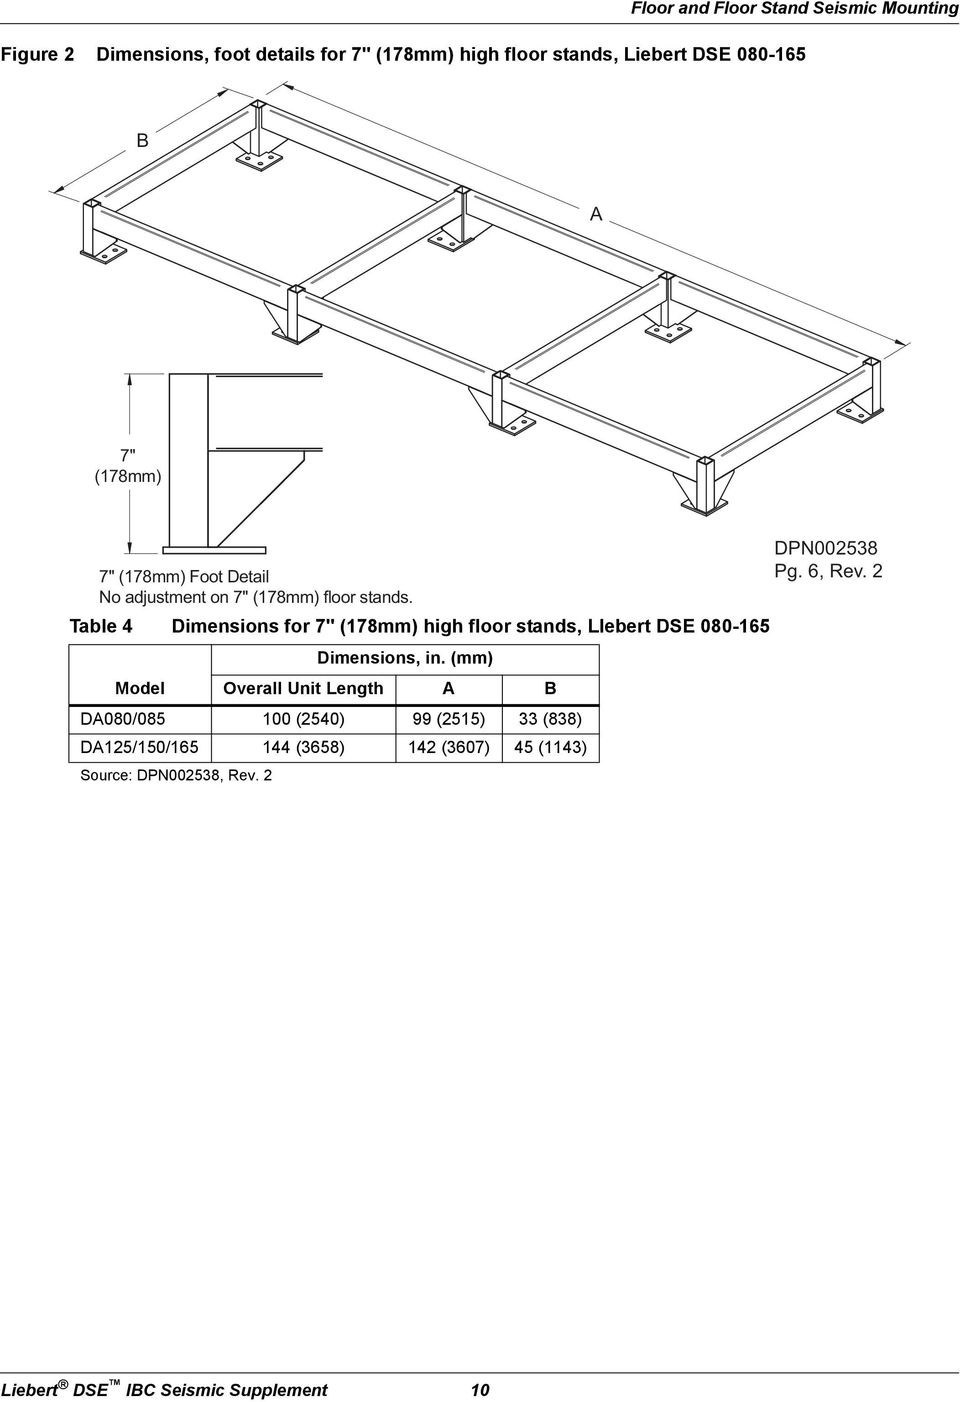 "Table 4 Dimensions for 7"" (178mm) high floor stands, LIebert DSE 080-165 Dimensions, in."